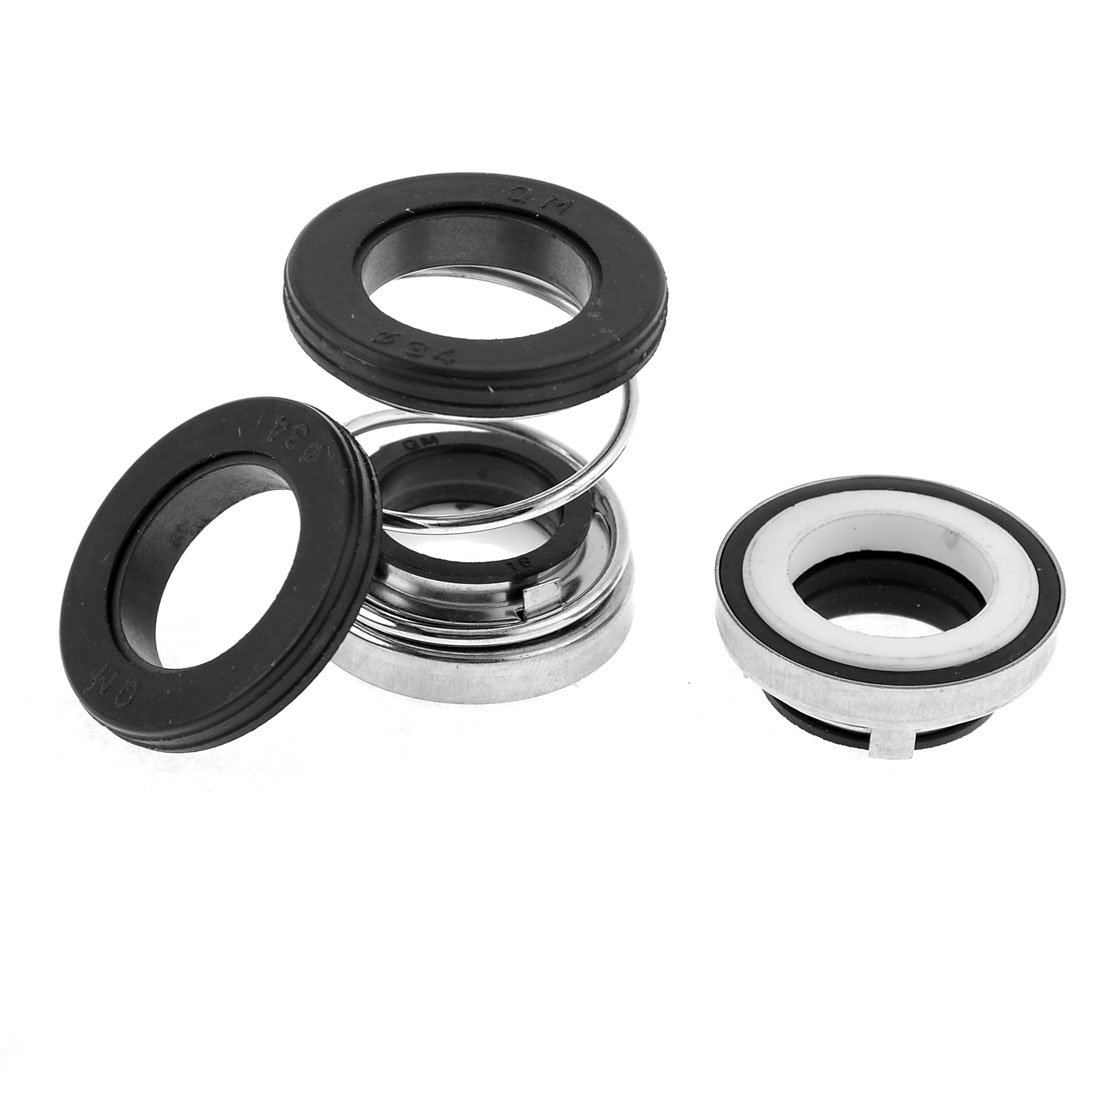 18mm Inside Dia Water Pumps Tubs Coil Spring Mechanical Shaft Seal